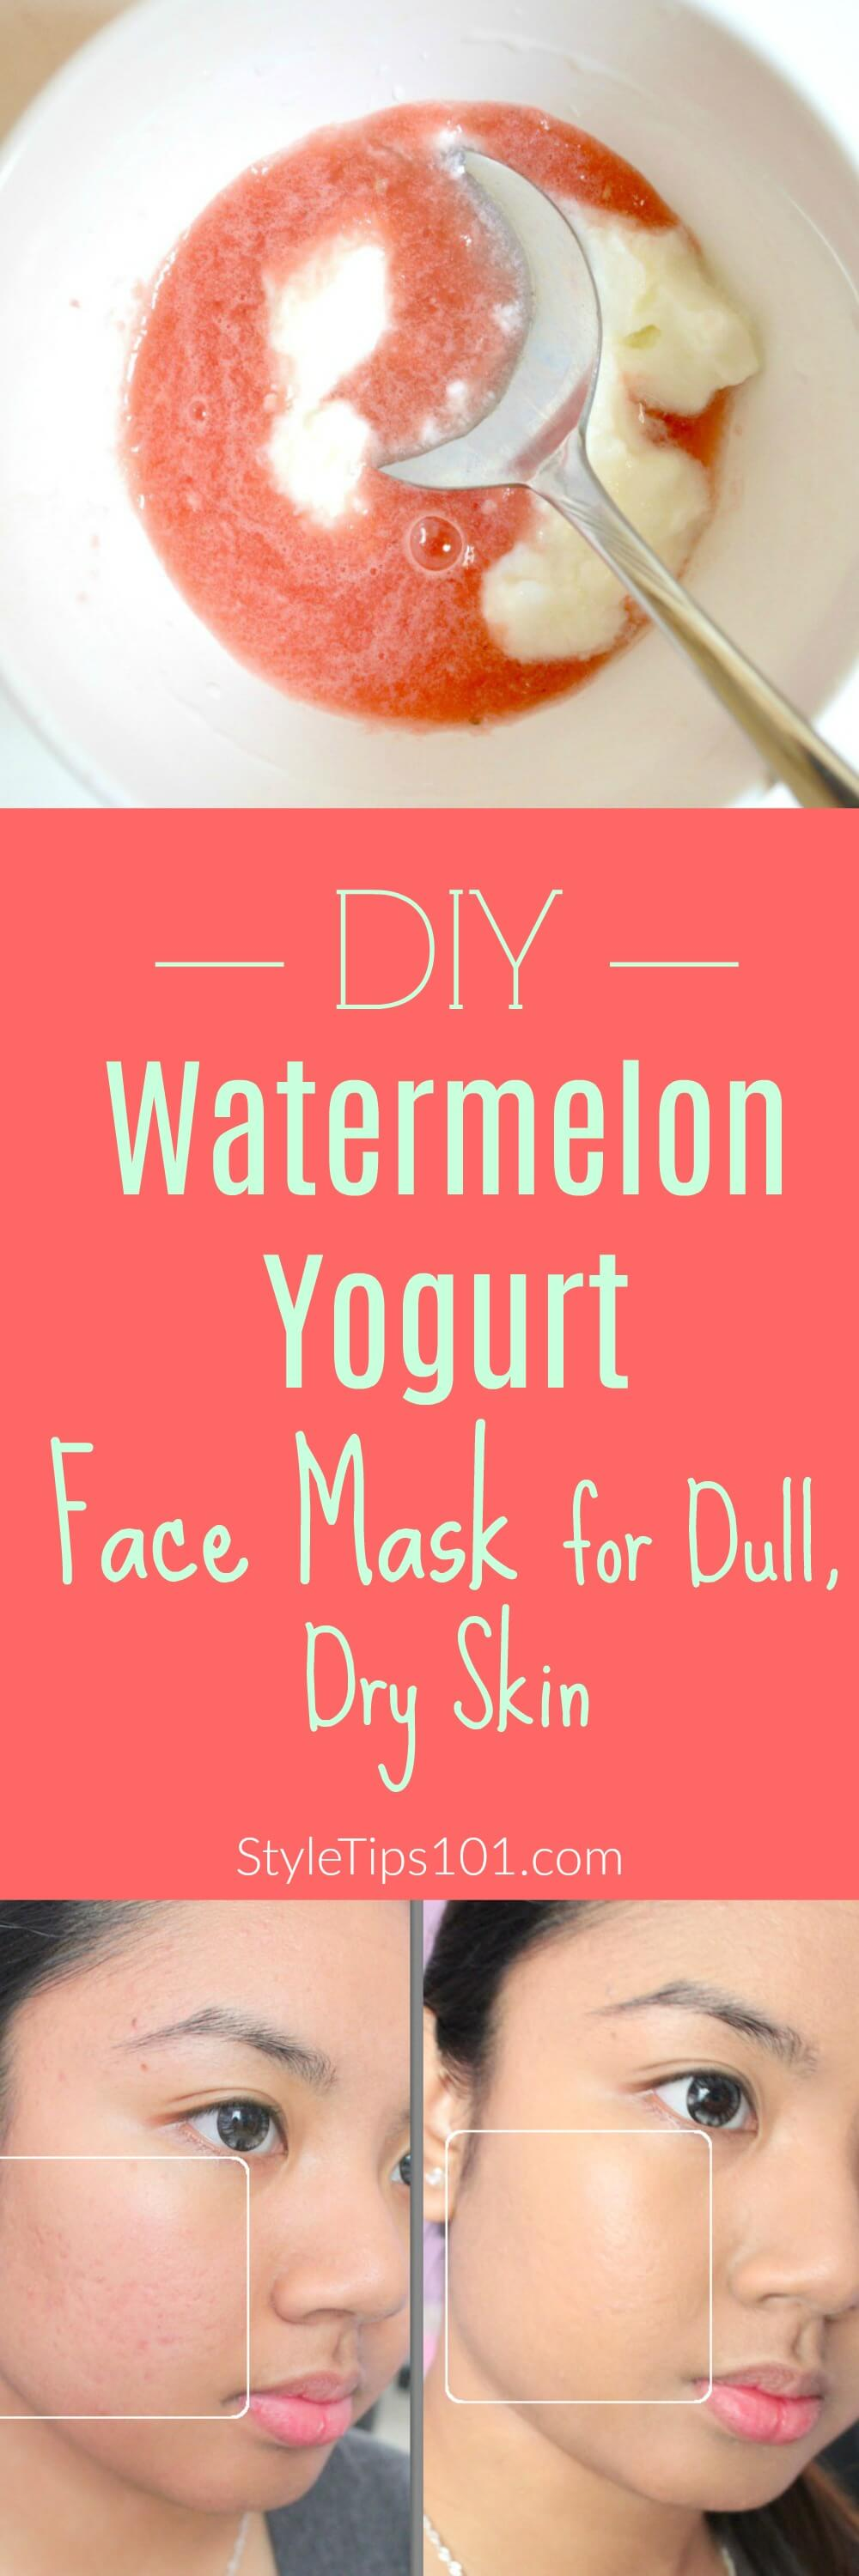 DIY Watermelon Face Mask For Dry, Dull Skin